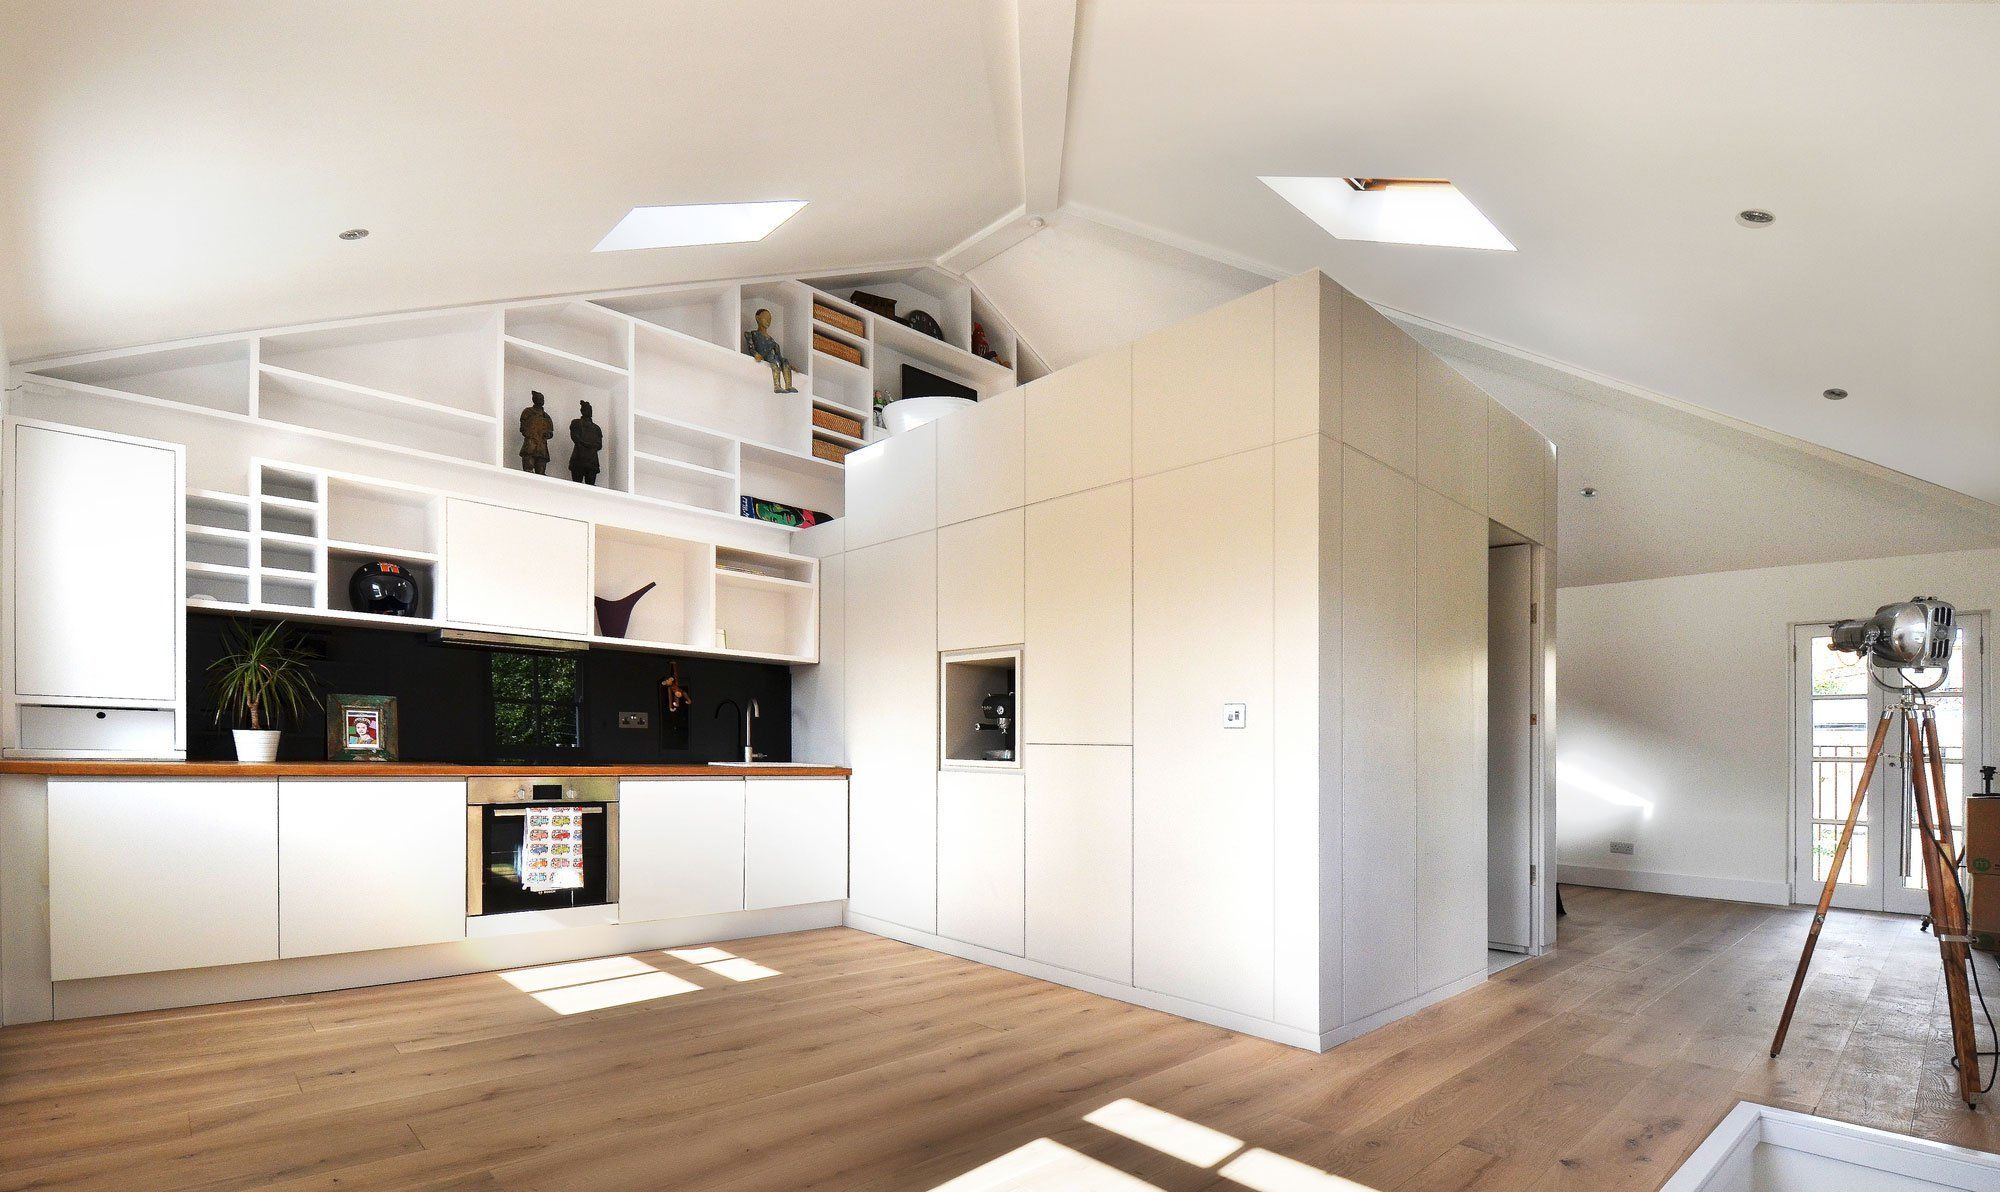 loft-space-in-camden-04